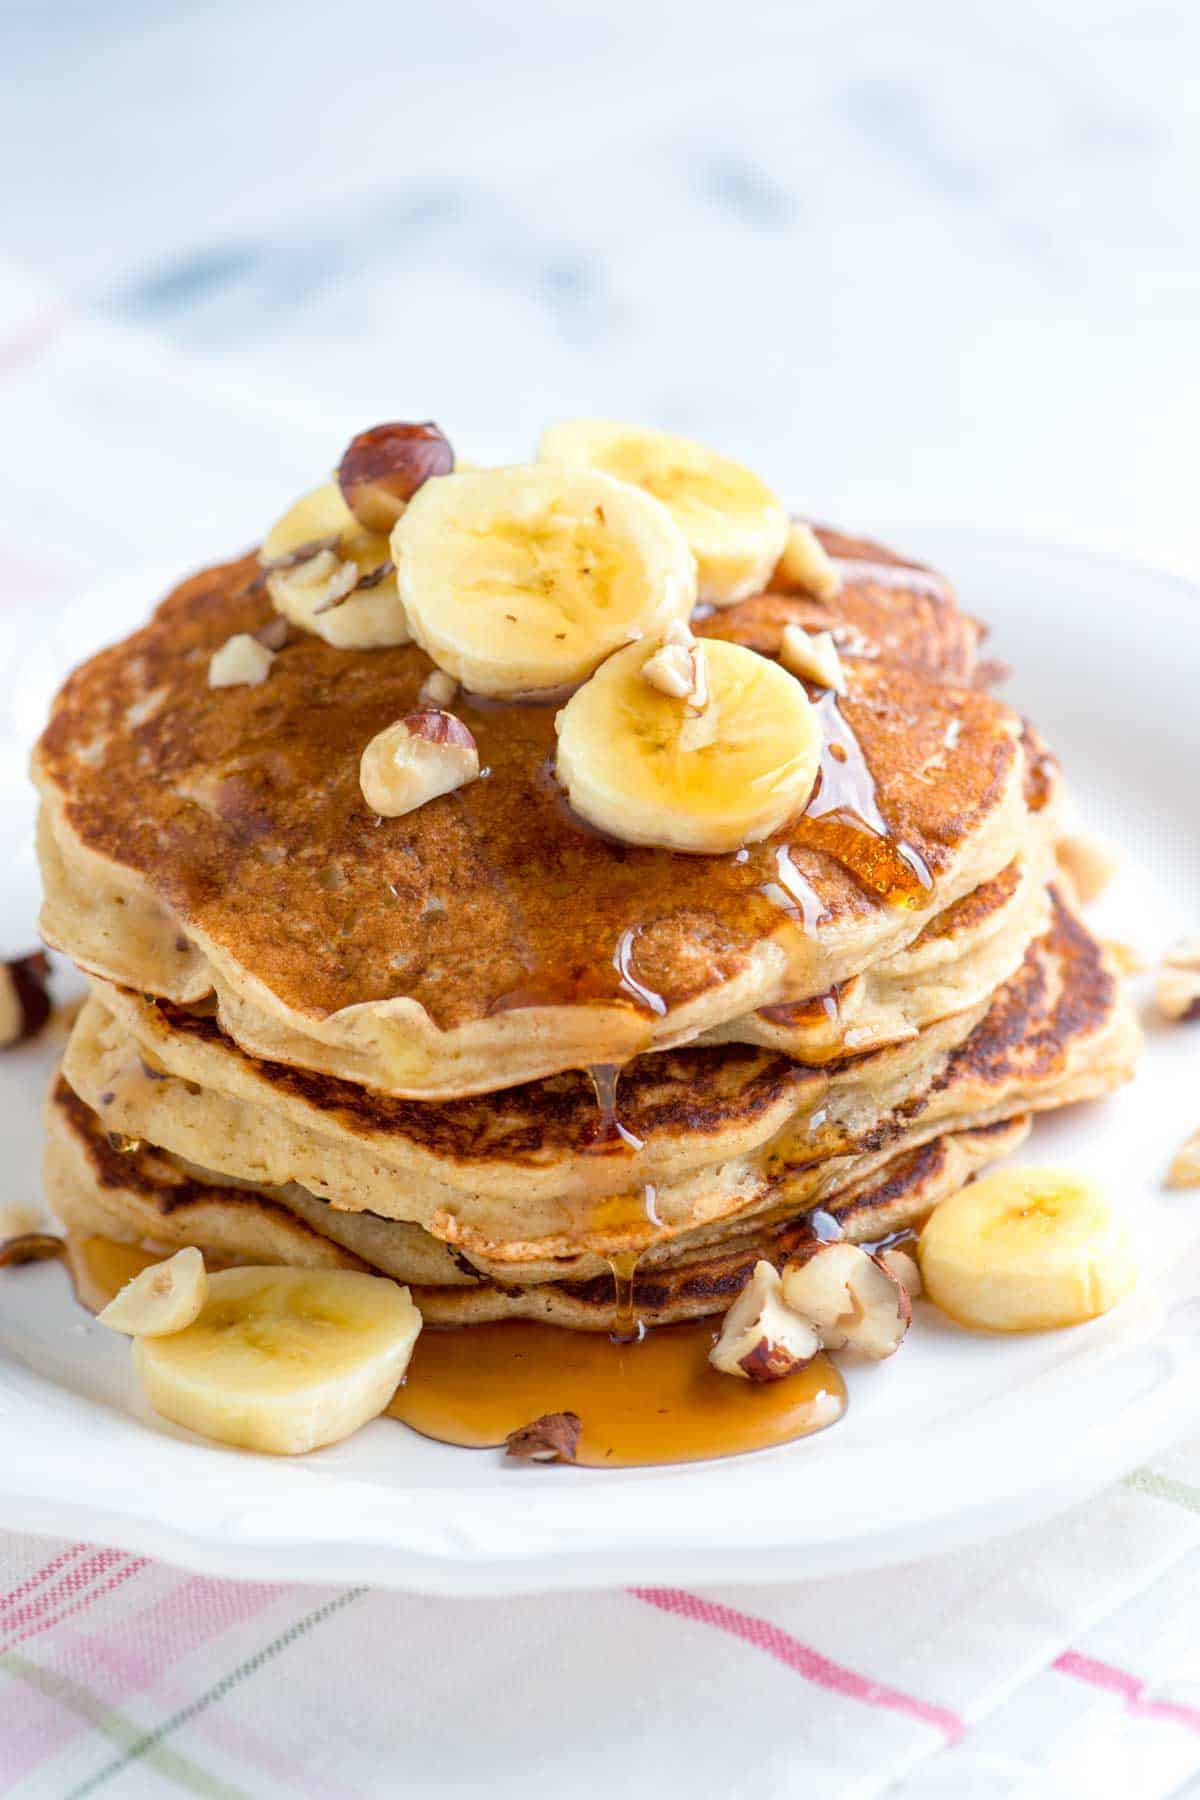 Our easy banana pancakes with buttermilk and warm spices takes less than 30 minutes and make even the pickiest eaters happy.